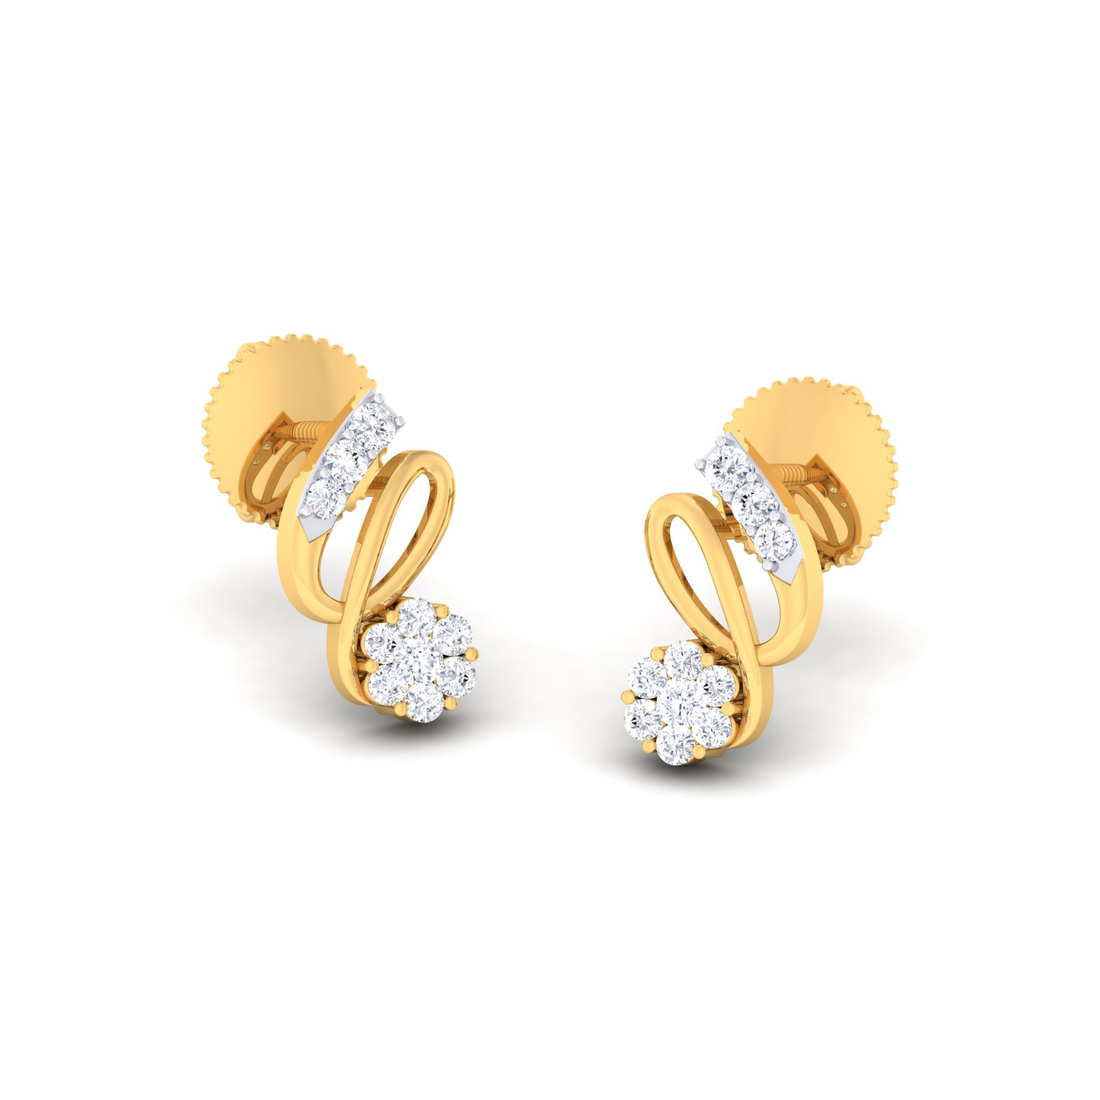 Arkina Diamond's Entangled style earrings